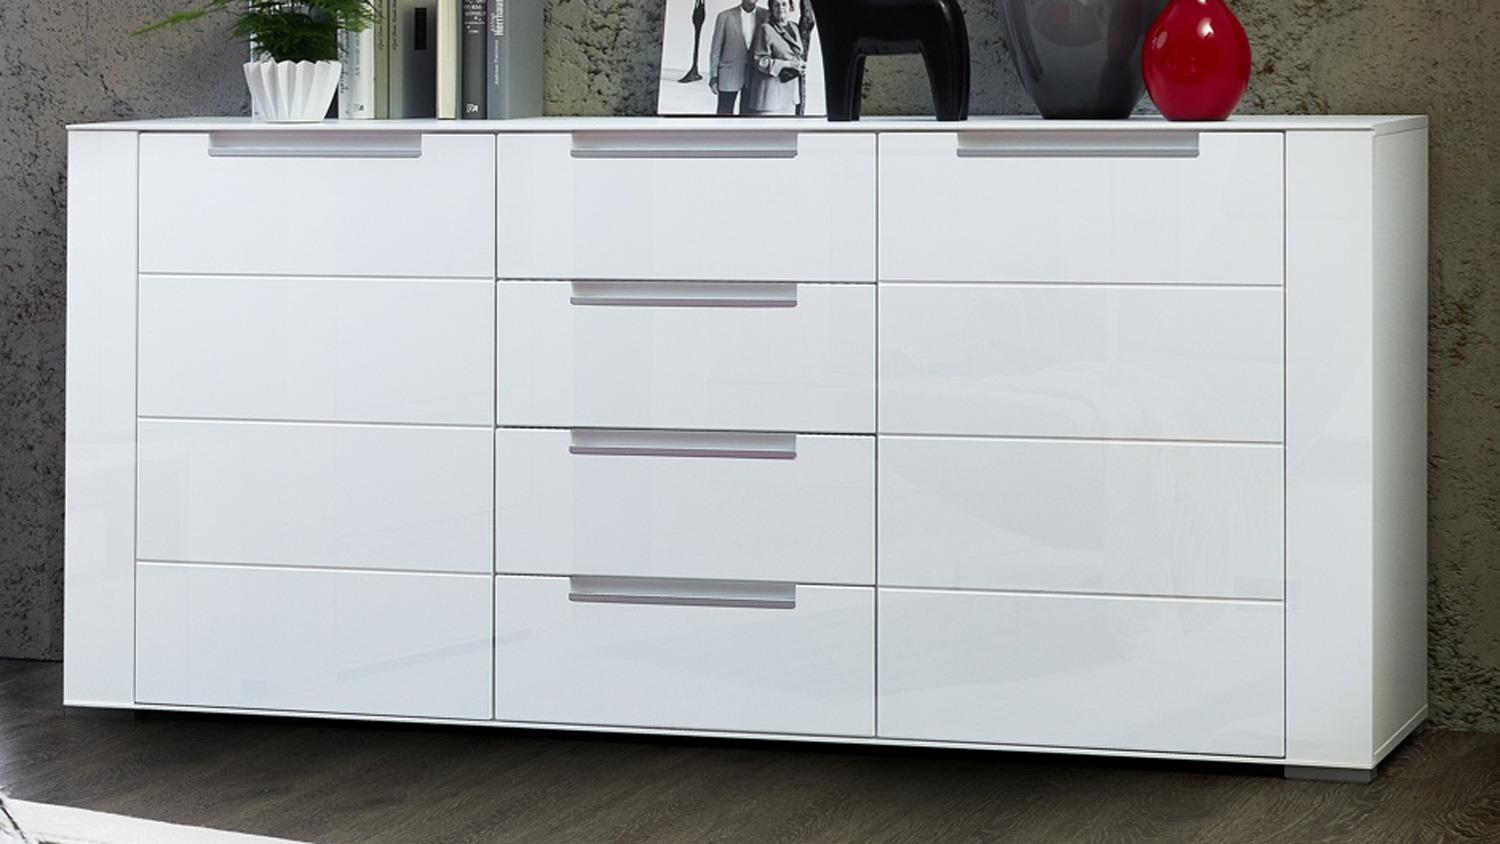 Sideboard dinaro kommode anrichte in wei matt 170 cm breit for Sideboard kommode